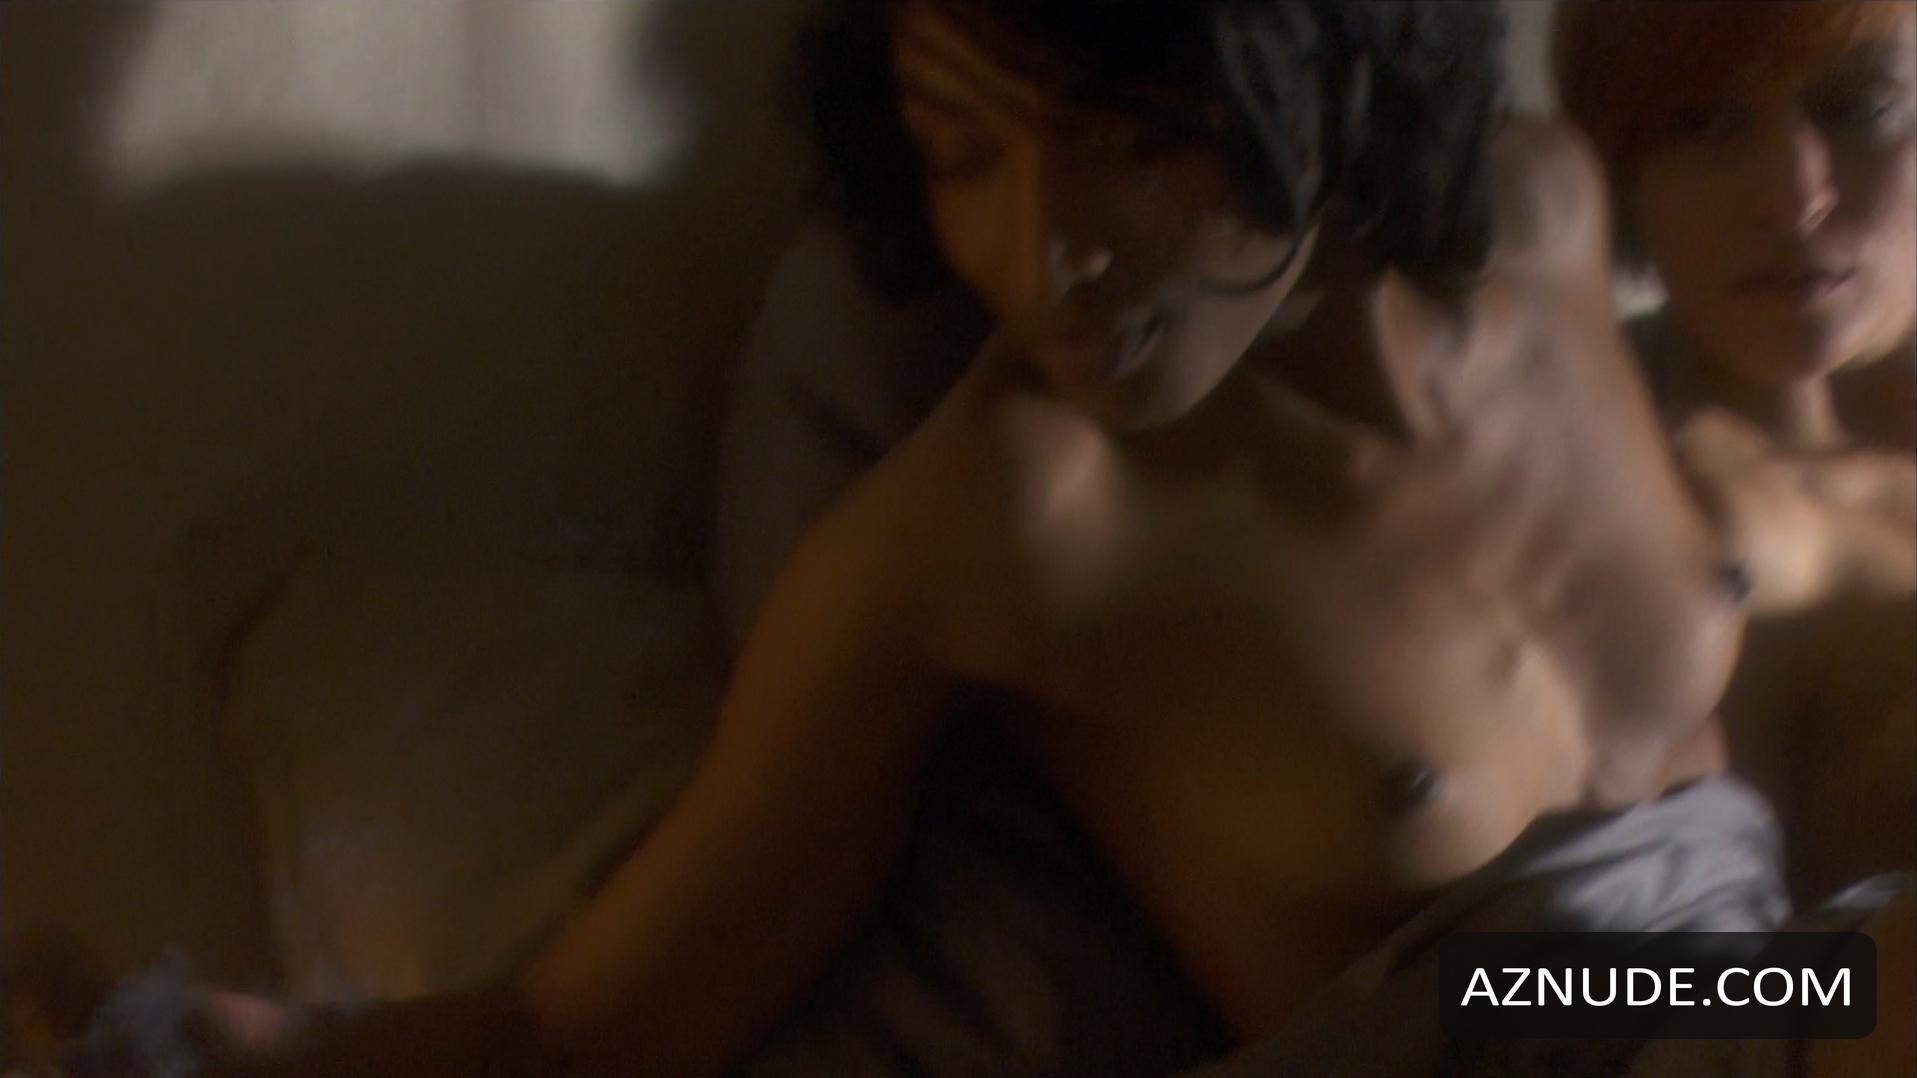 The Sara martins sex scenes precisely does